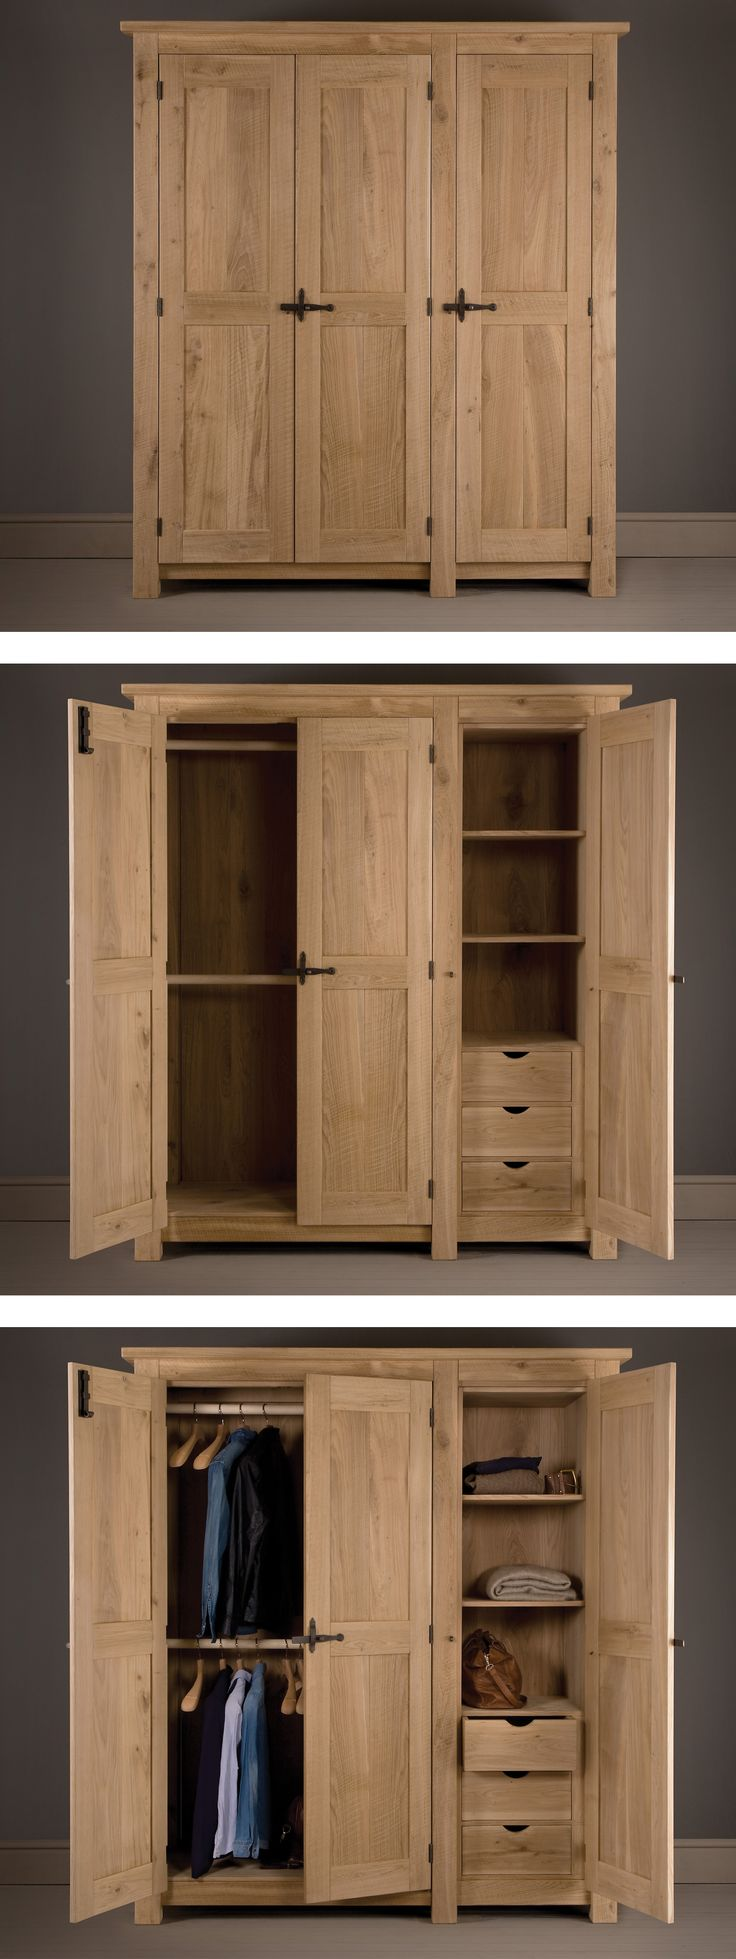 Indigo Oak Panel Wardrobe handcrafted with bespoke hand forged metal work. Create your own customised wardrobe interior from our options of handmade drawers and solid shelves. #solidwood #oakwardrobe #indigofurniture